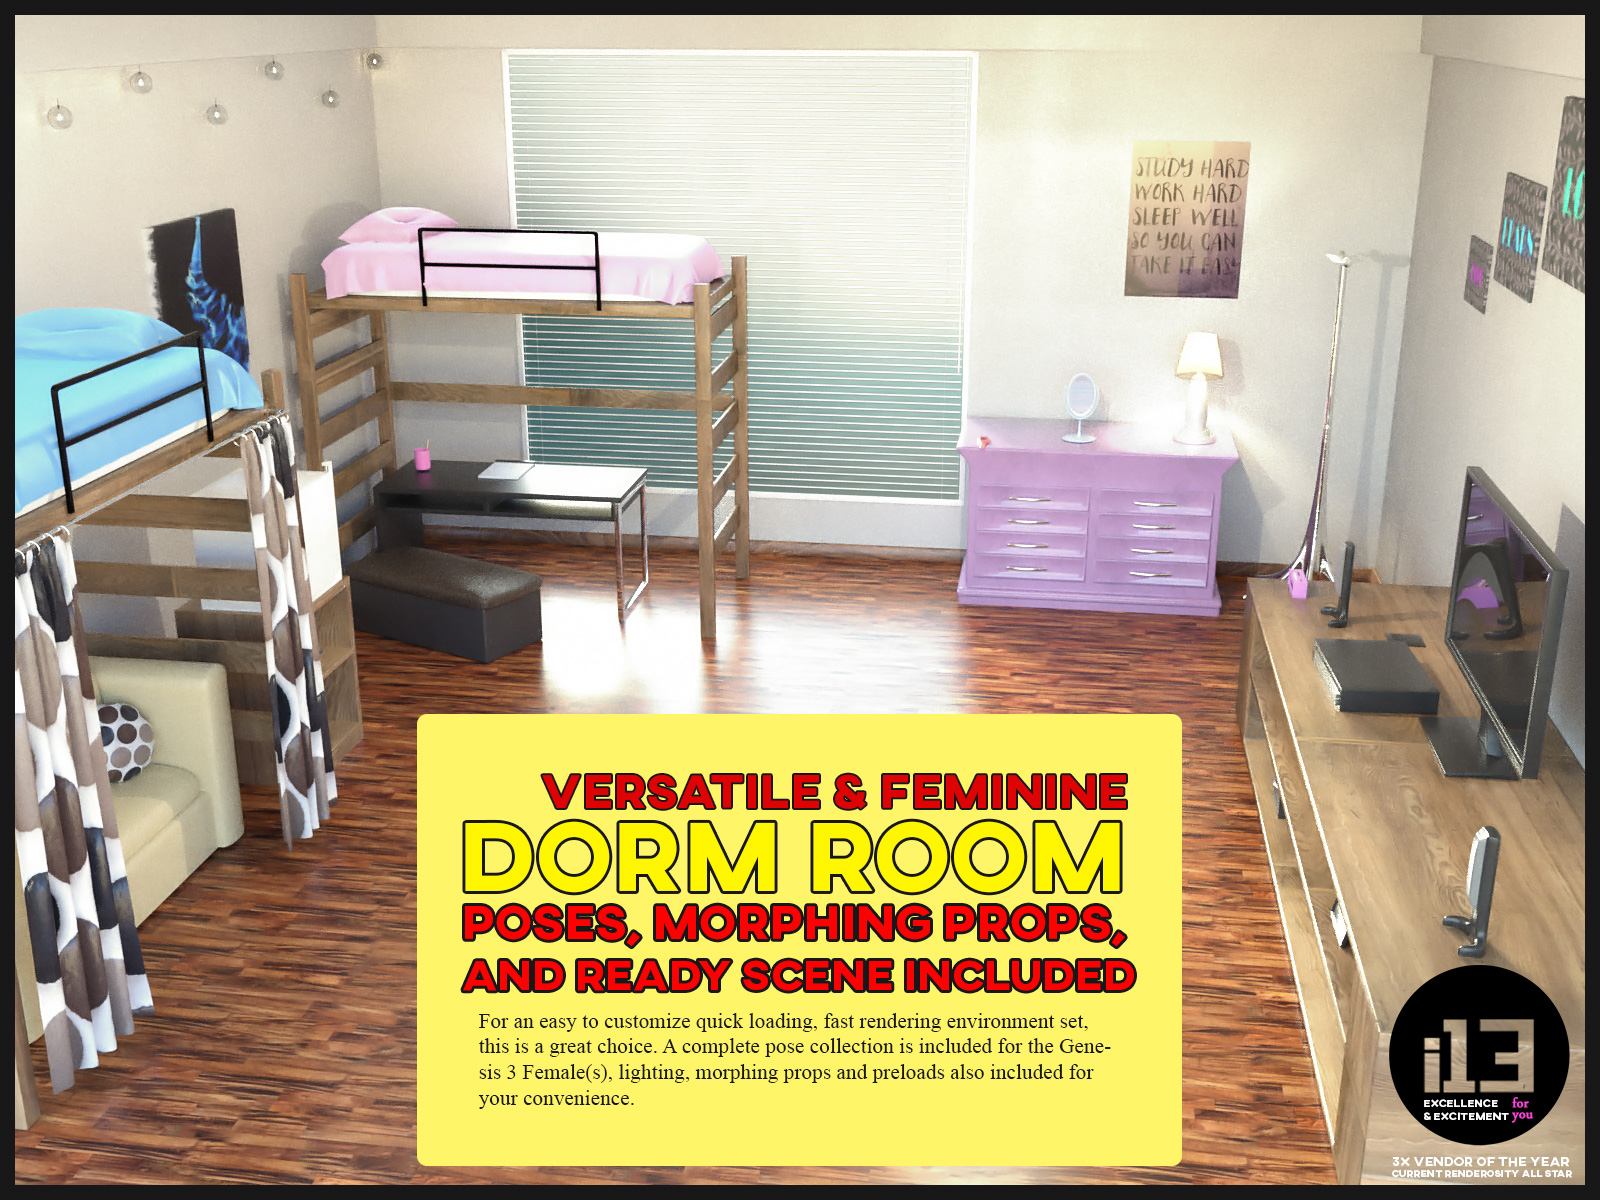 I13 Dorm Room With Poses For The Genesis 3 Female(s)